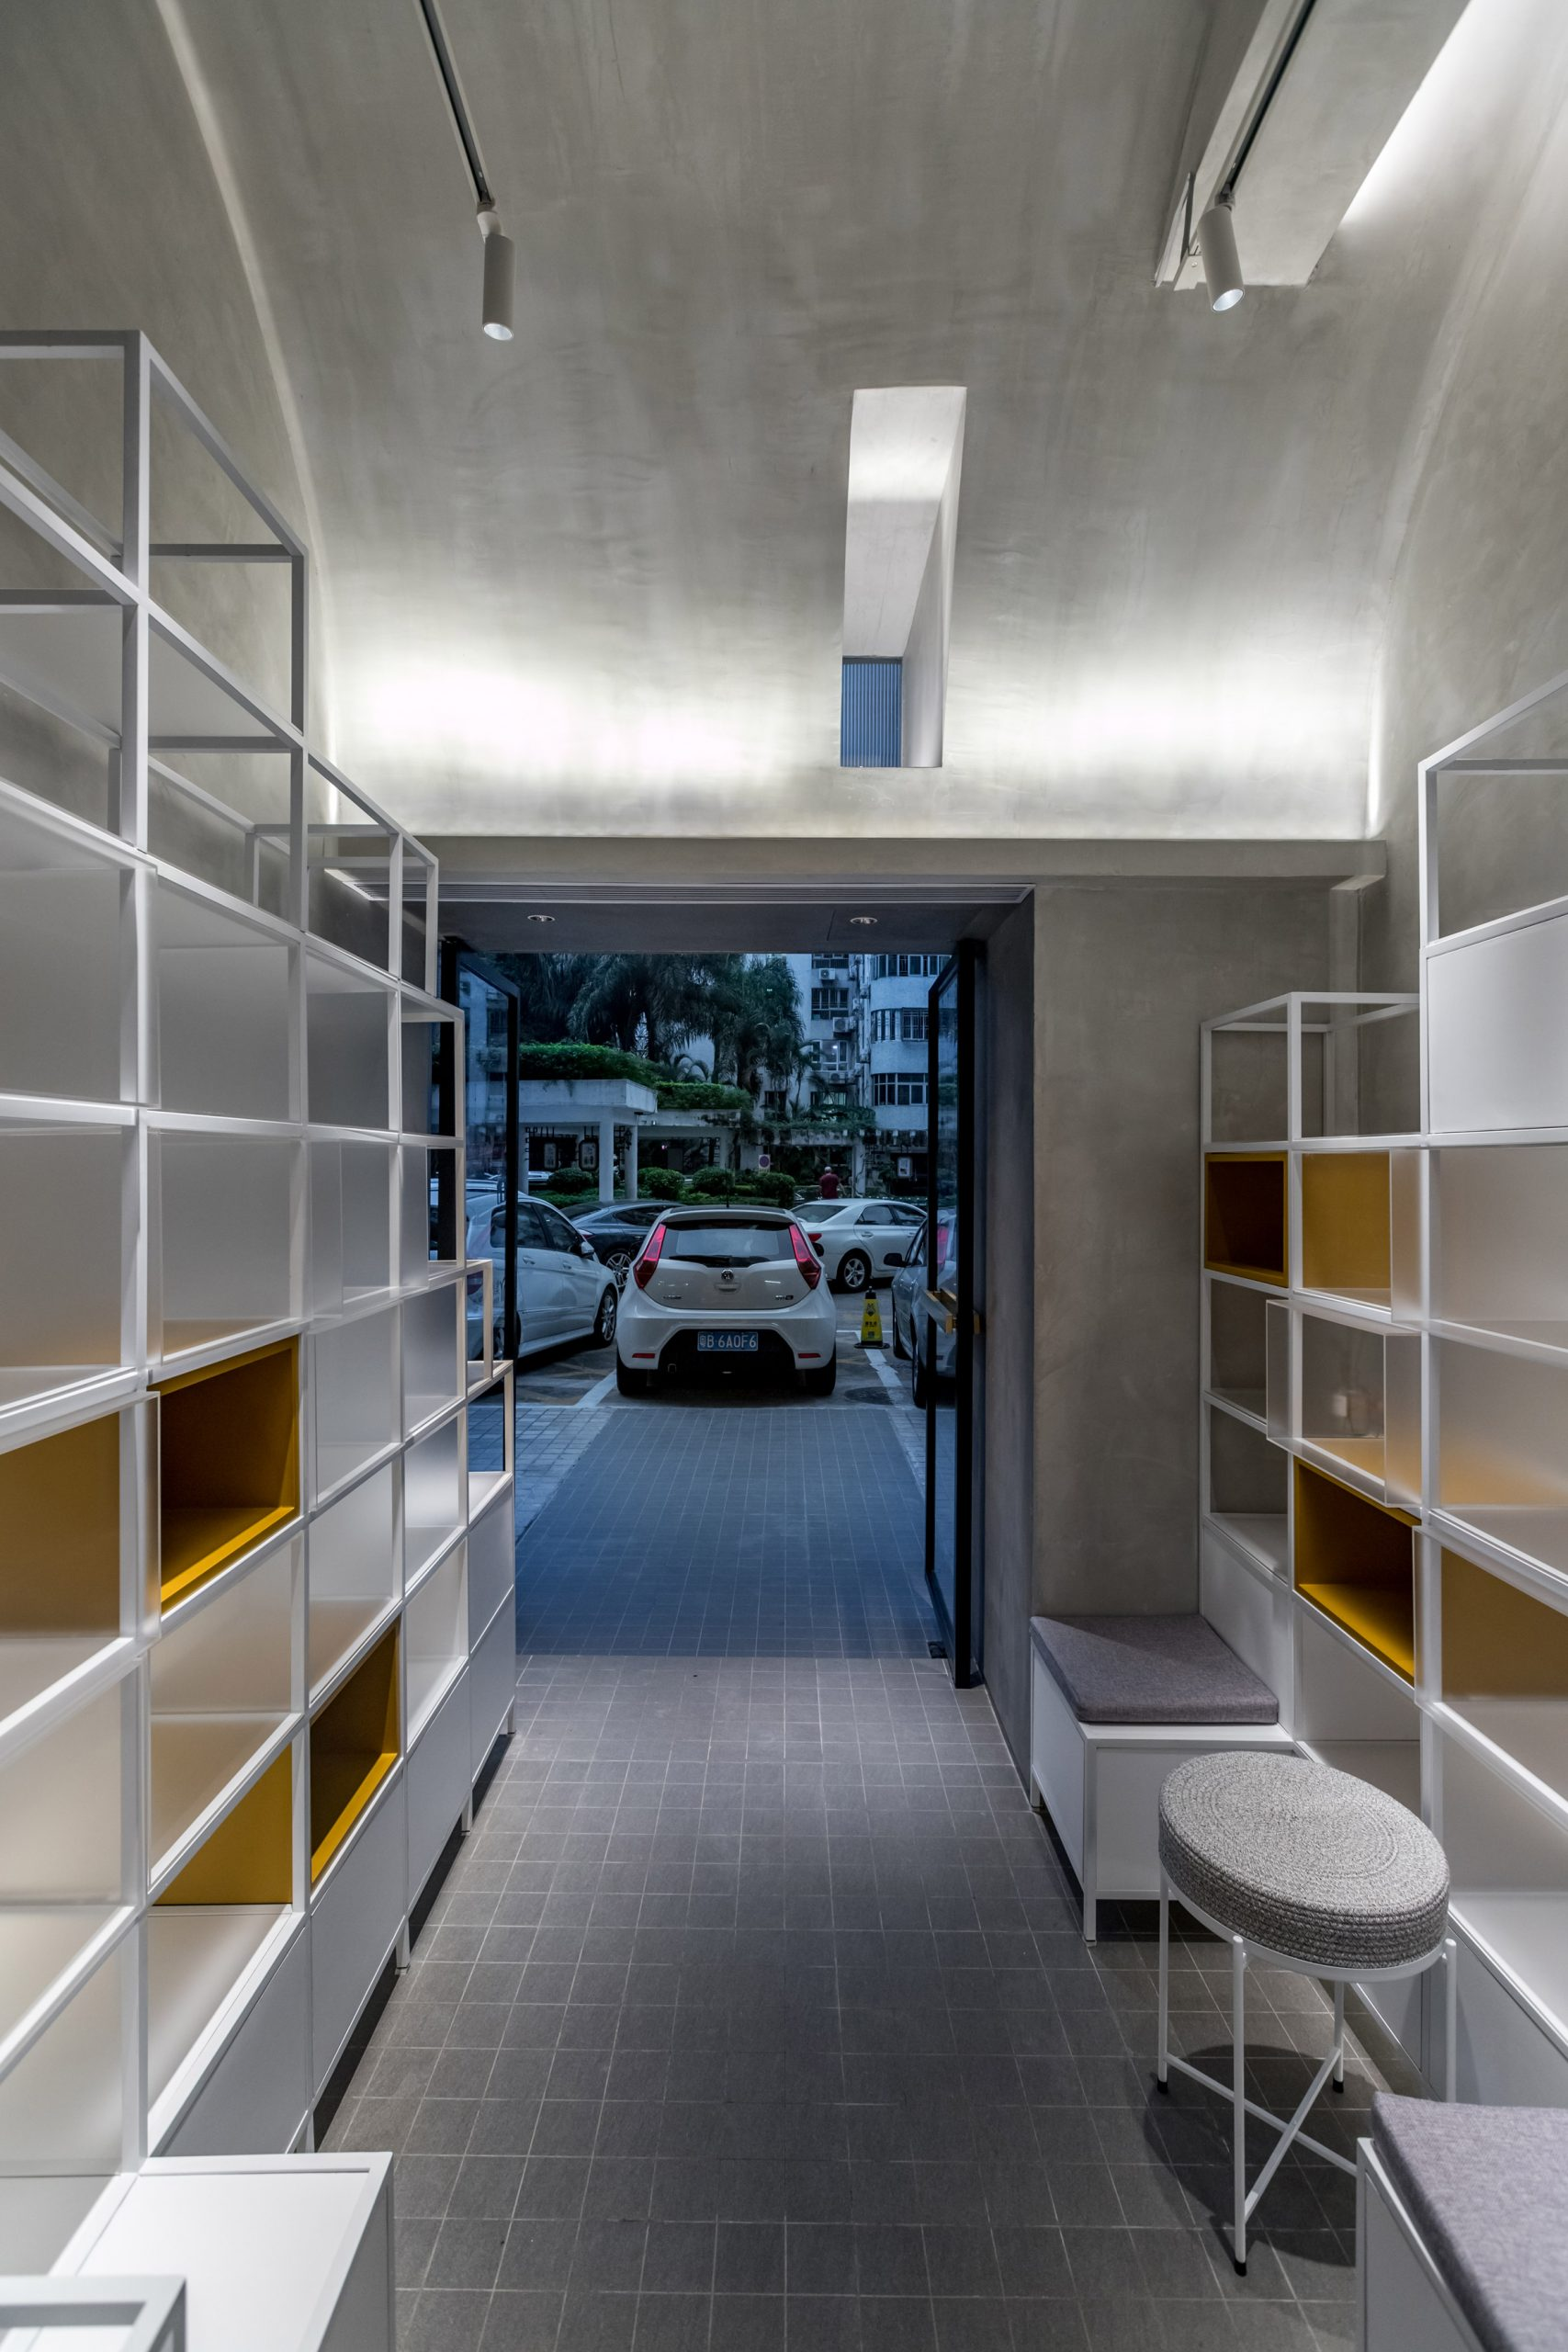 Interior of microcafe joys by Onexn in narrow gap in Shenzhen